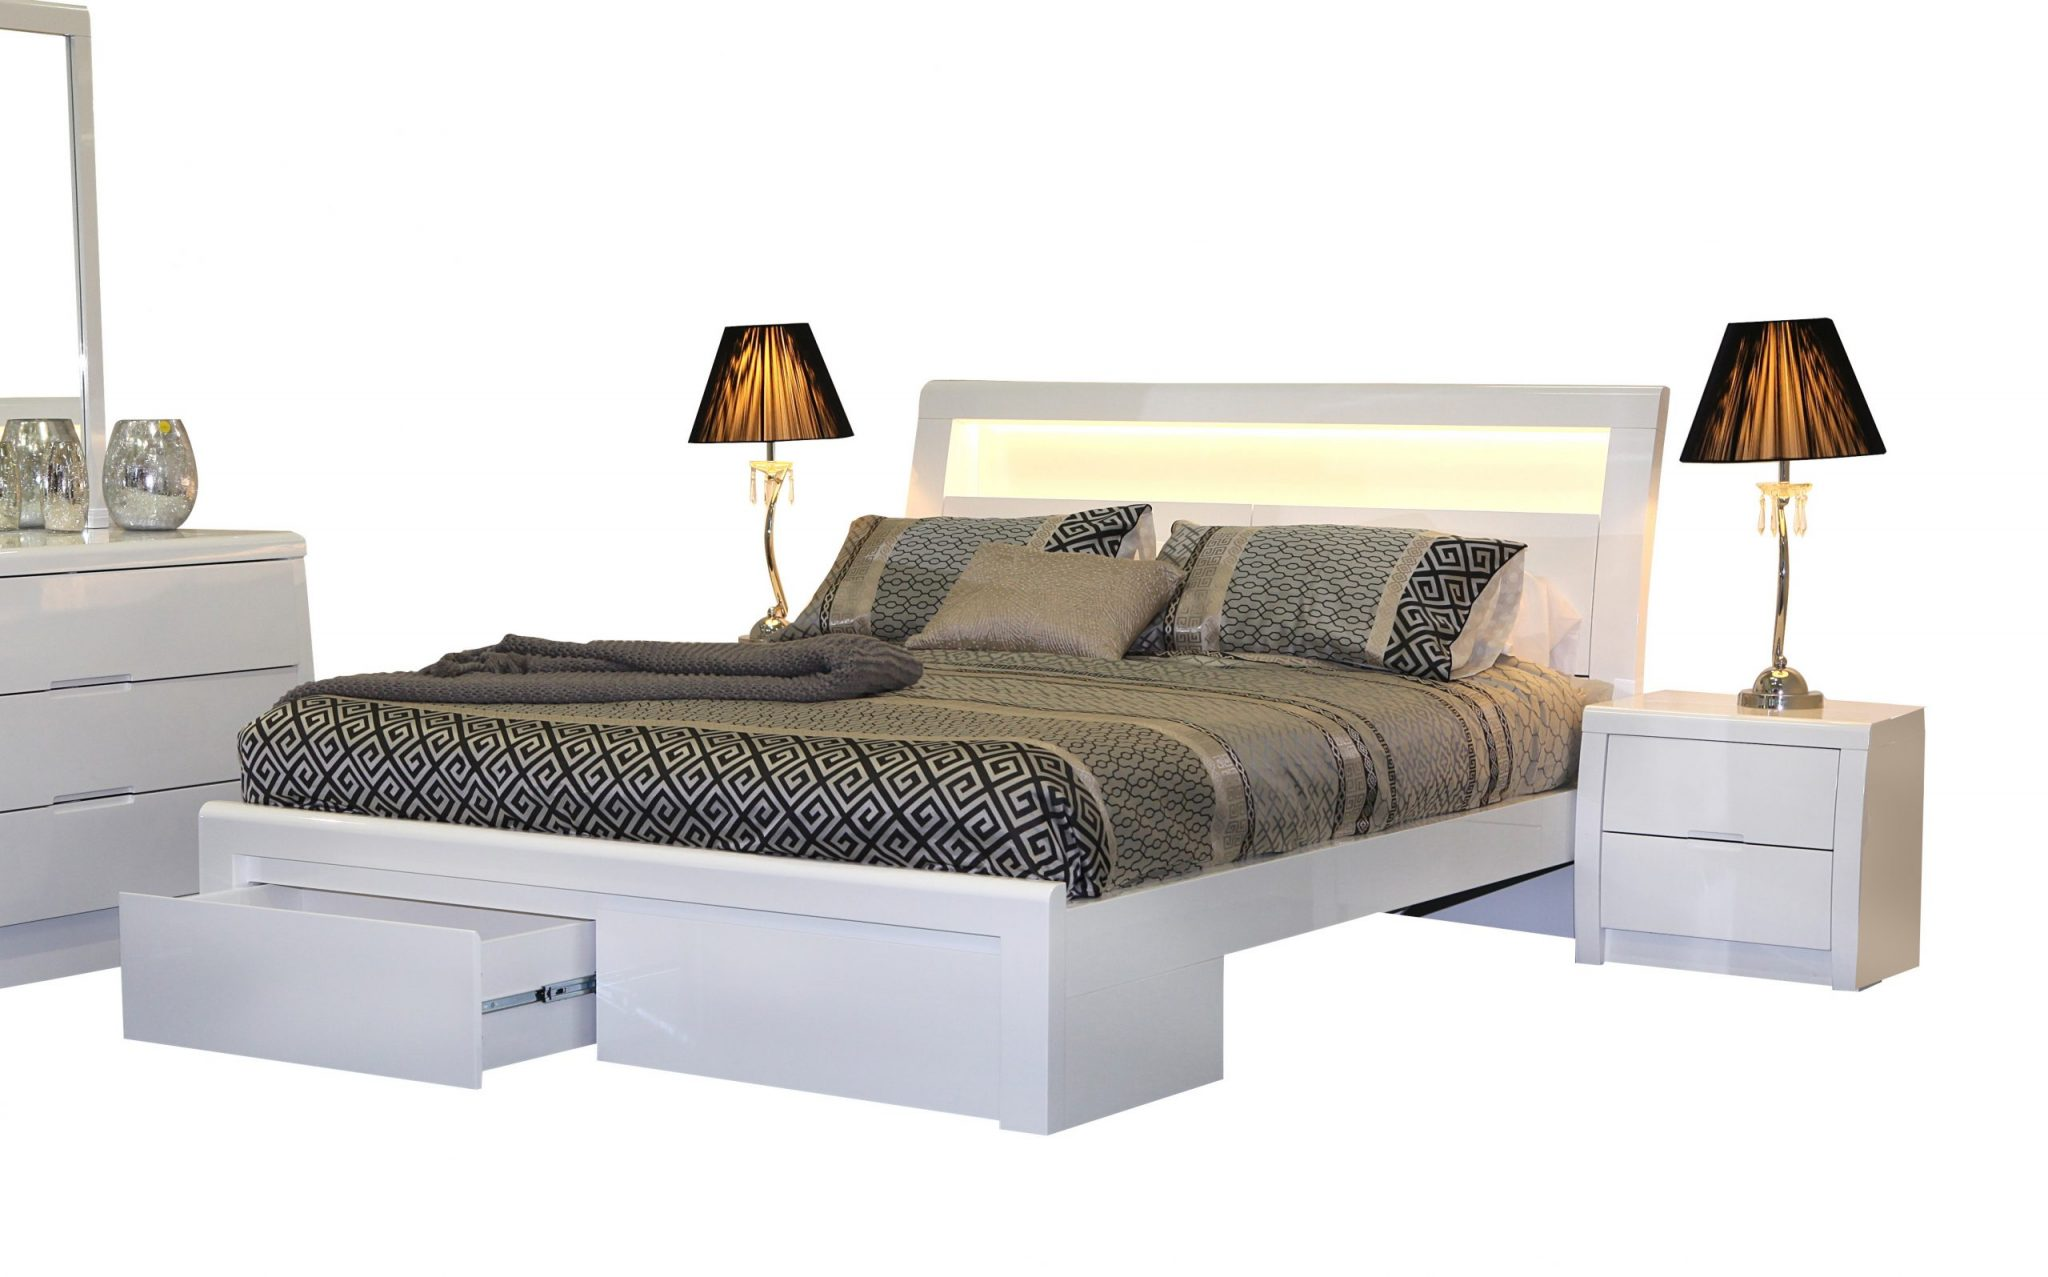 HAMILTON-BED-FRAME-scaled-1.jpg